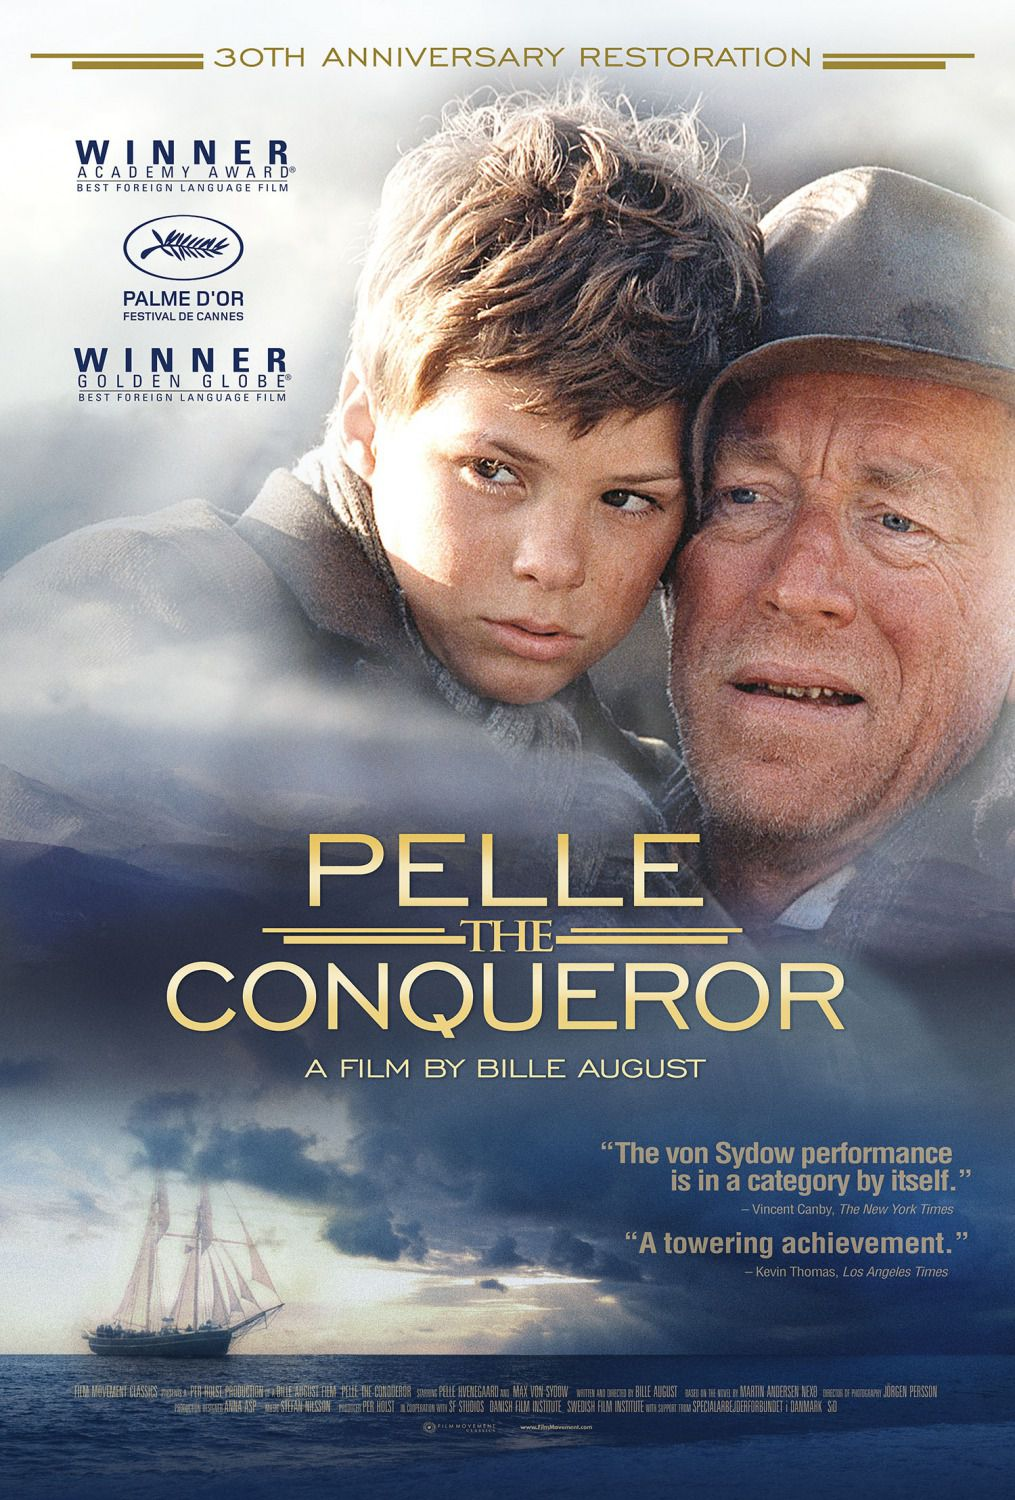 Pelle the Conqueror film poster